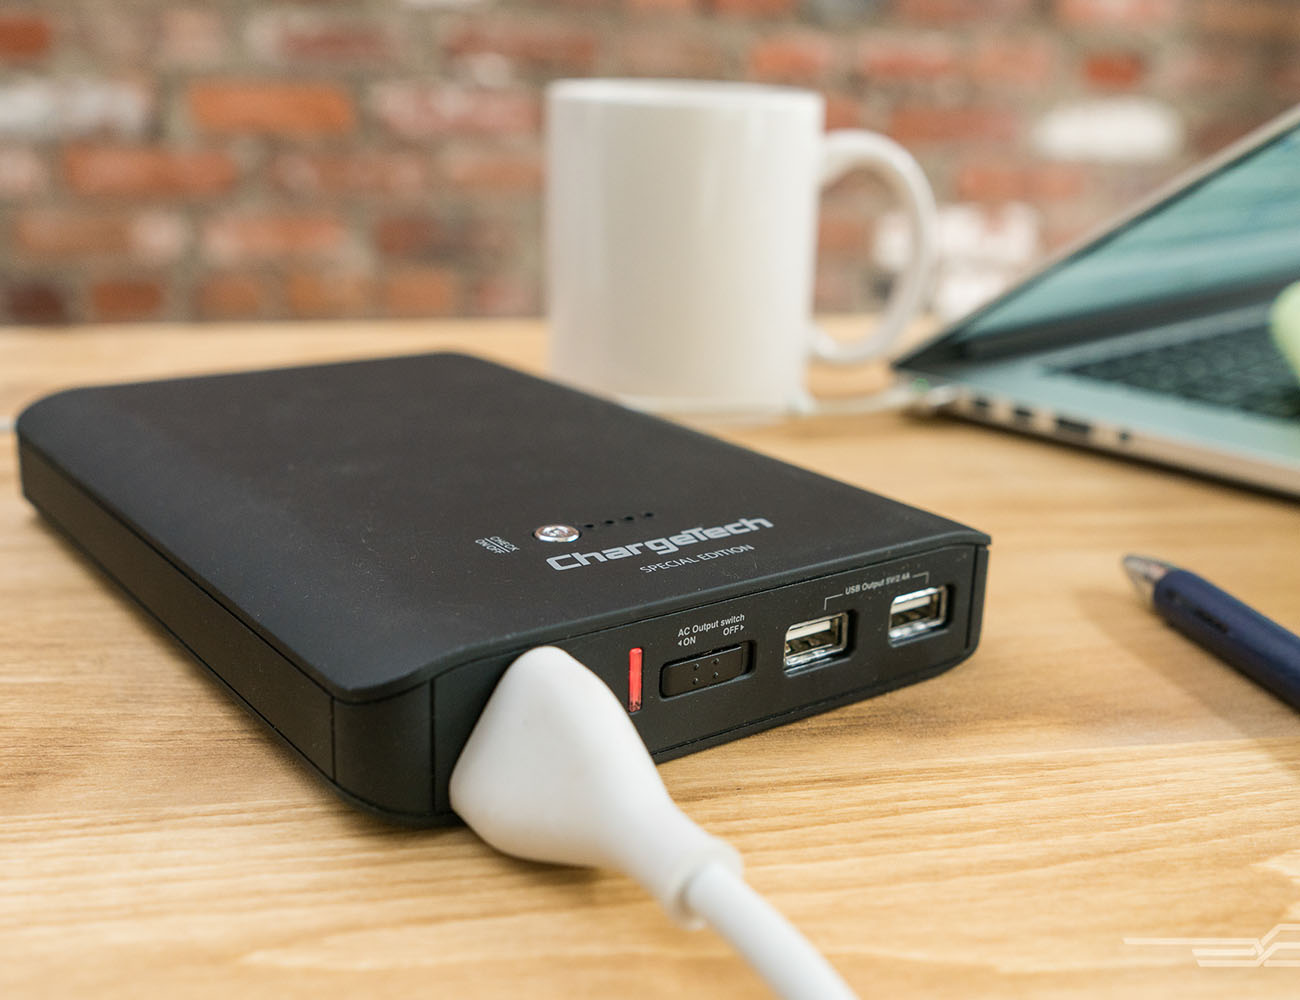 ChargeTech Universal Portable Power Bank